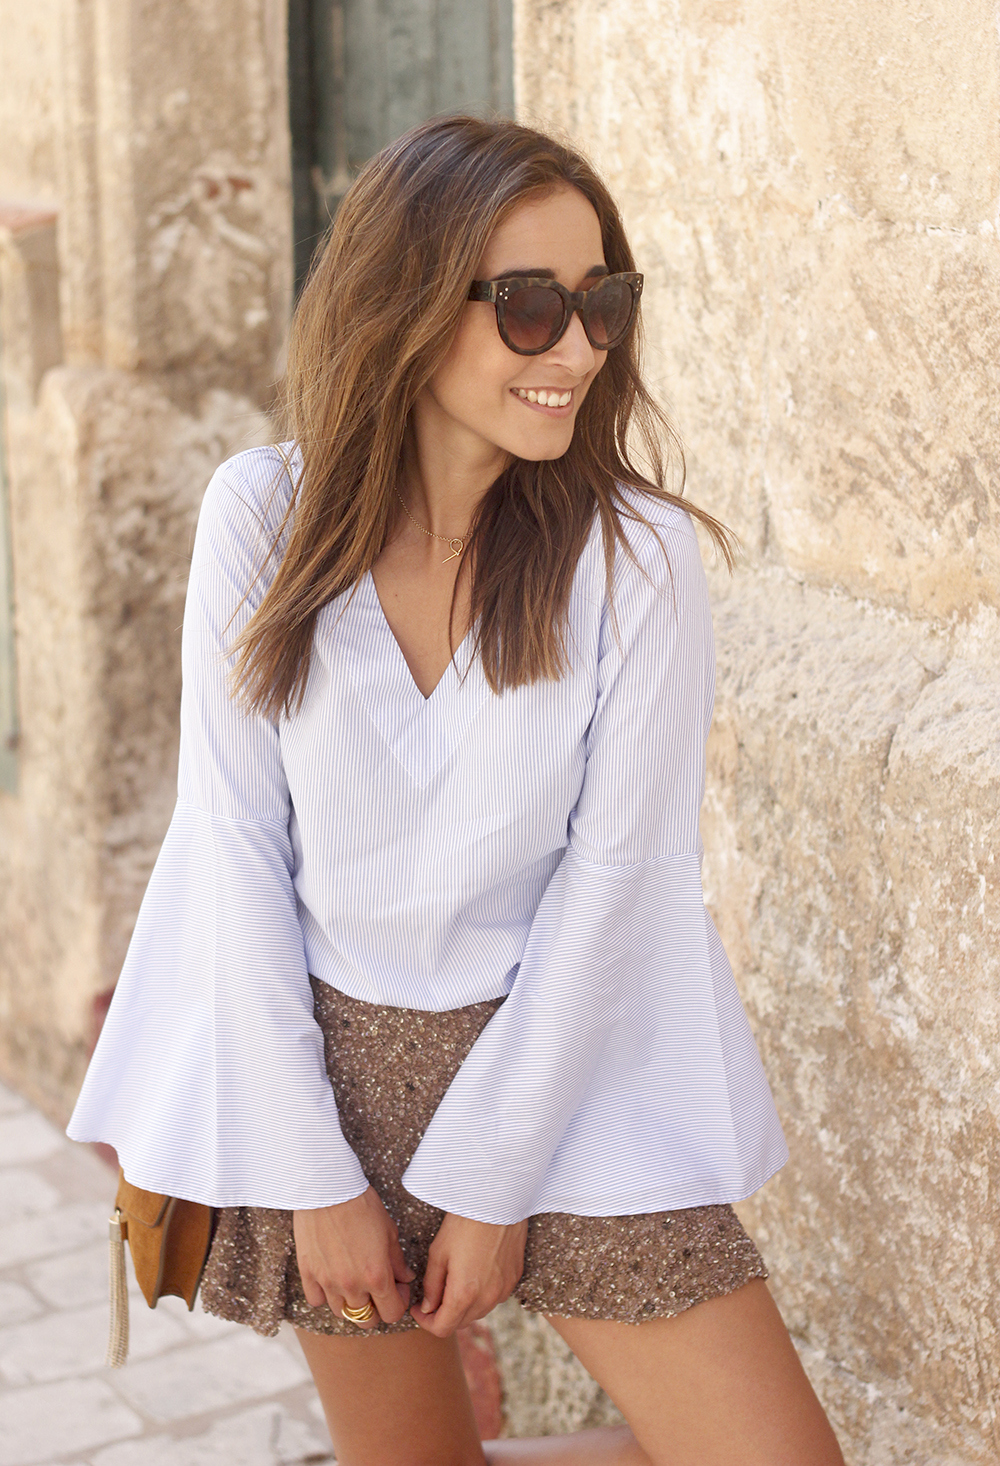 sequined shorts bell sleeves striped shirt summer flat sandals summer fashion outfit16